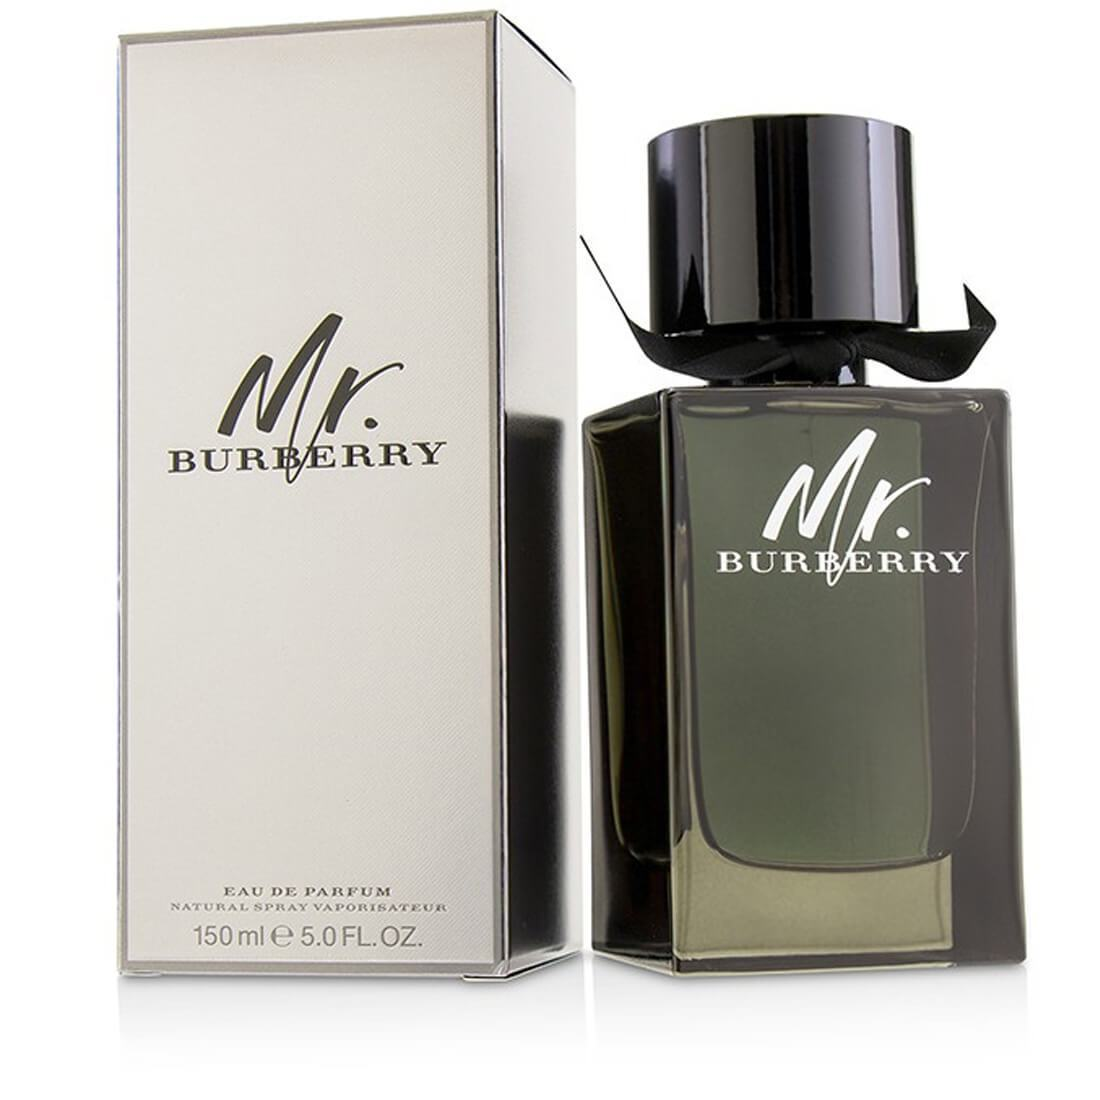 Burberry Mr Burberry Perfume - 150ml